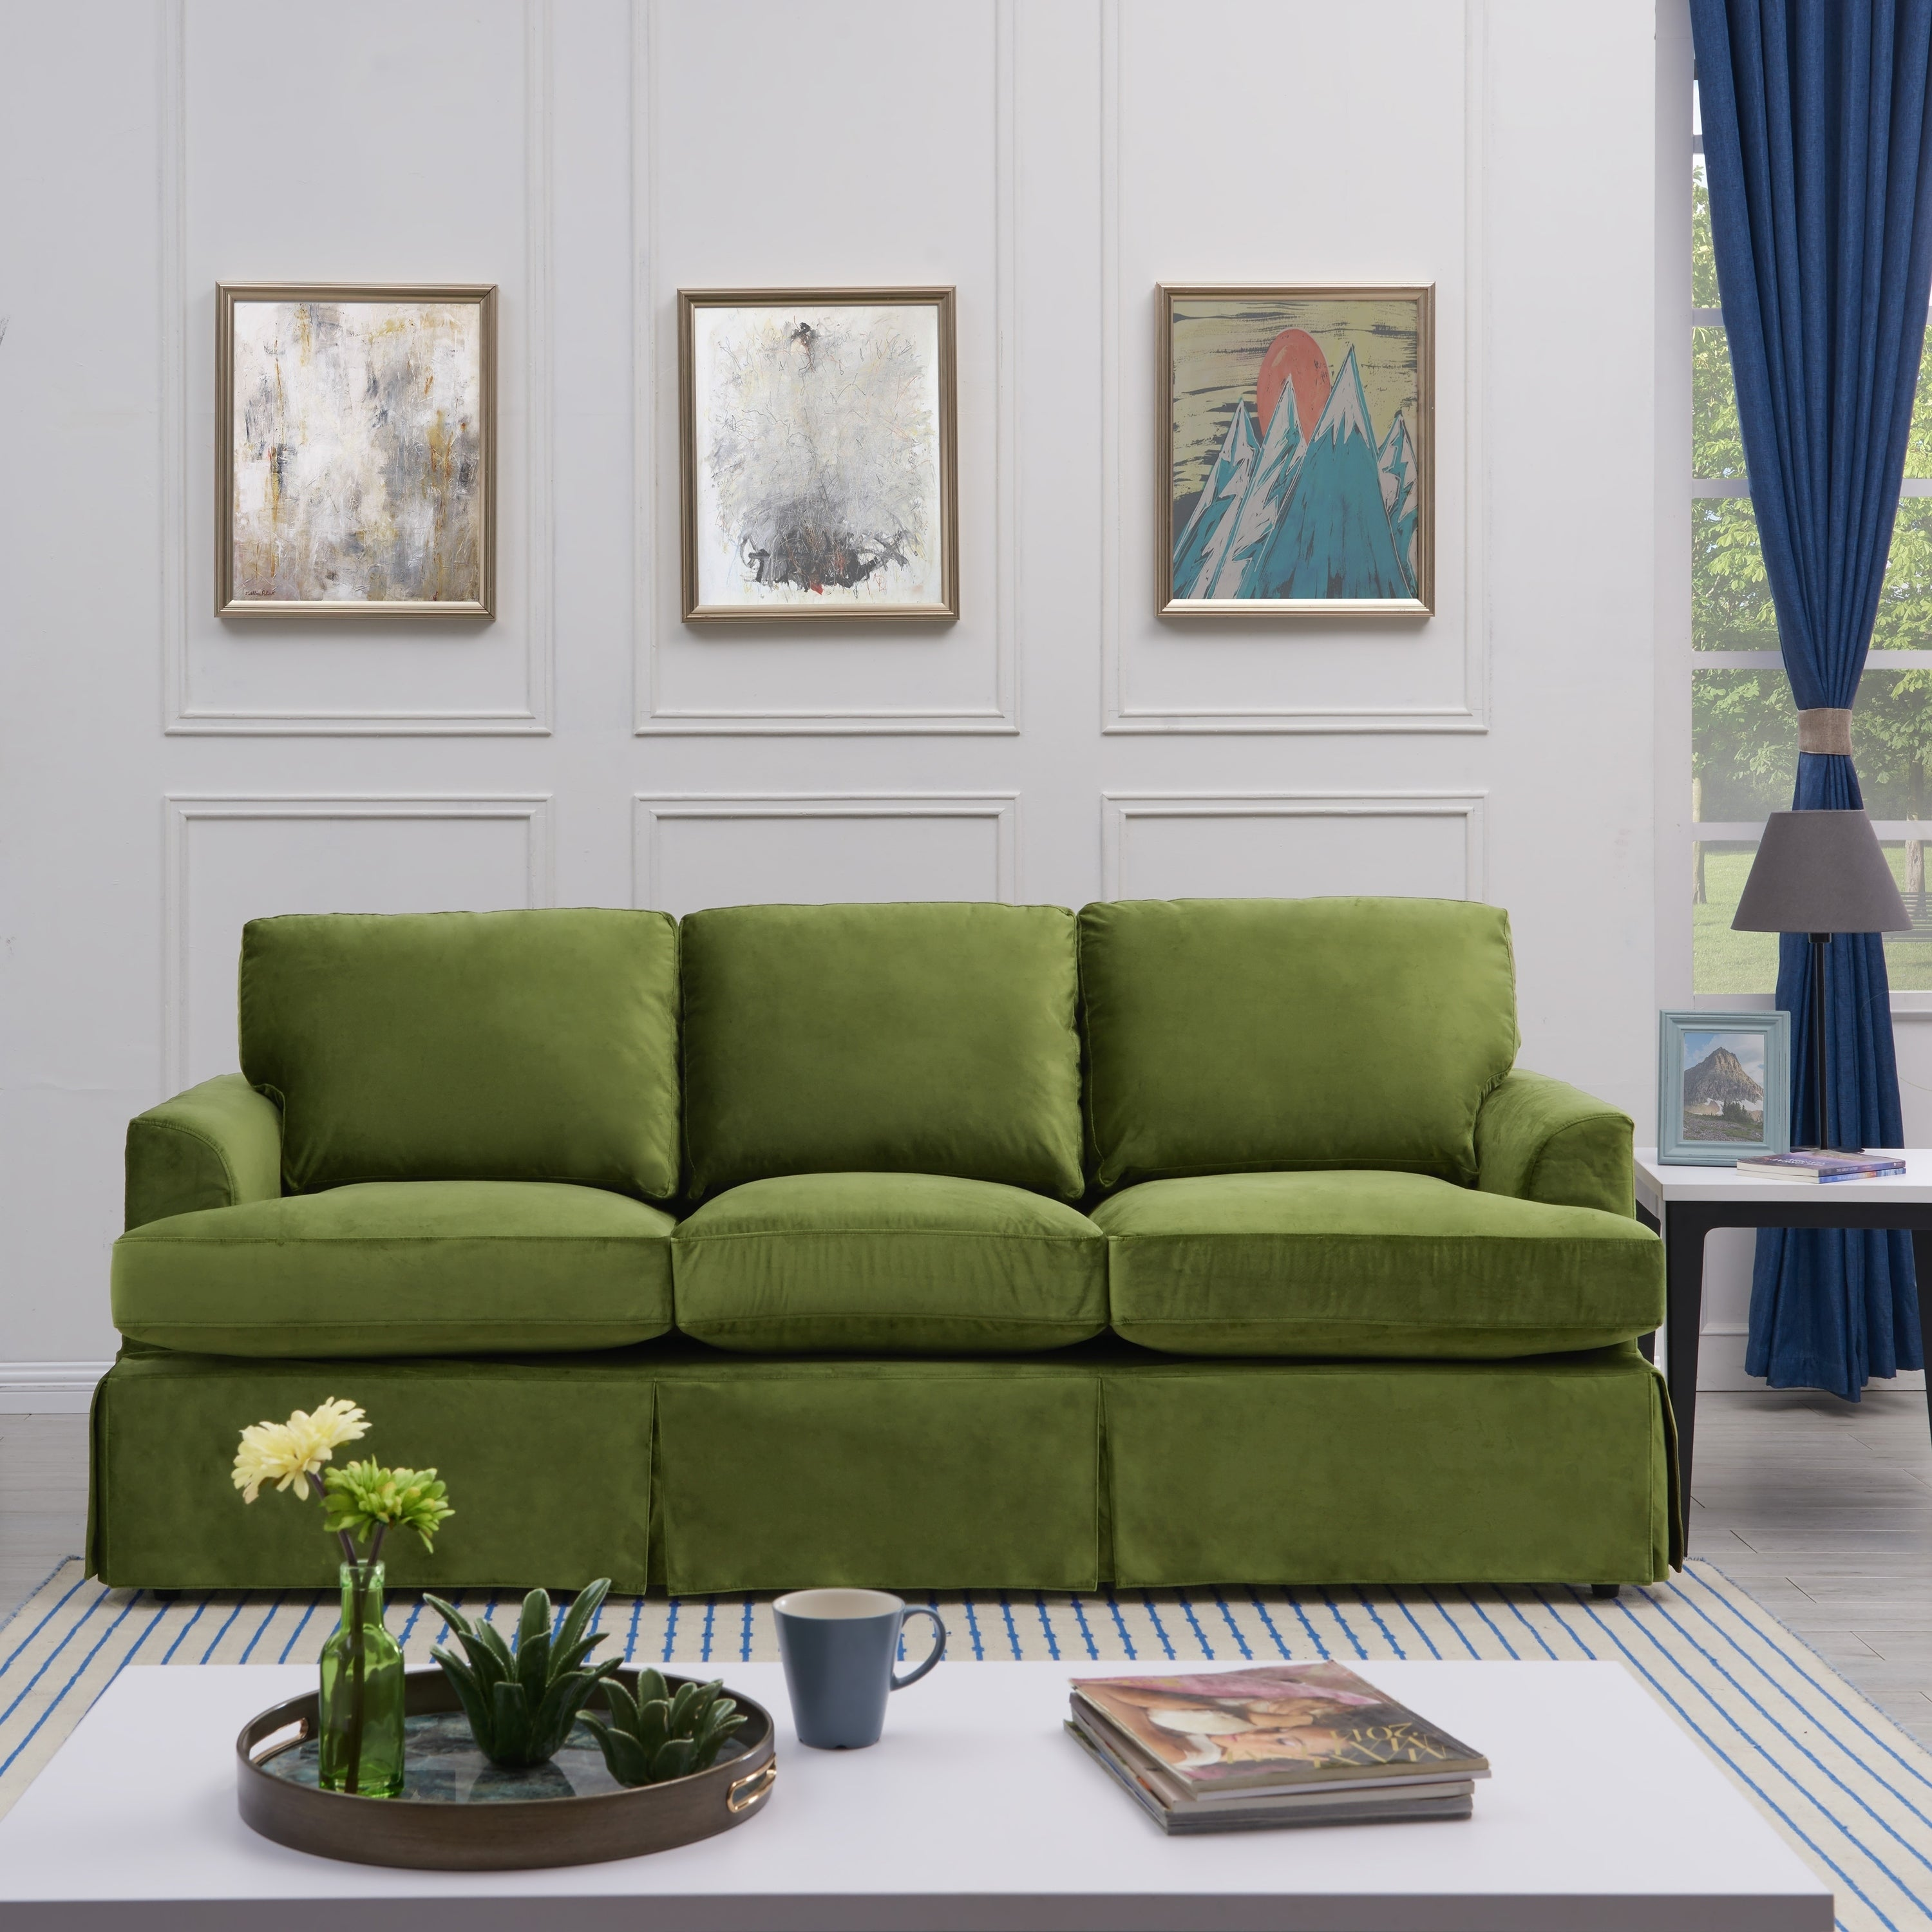 Handy Living Orlando Sofast Kale Green Velvet Slipcover Sofa With Skirt On Free Shipping Today 21727686